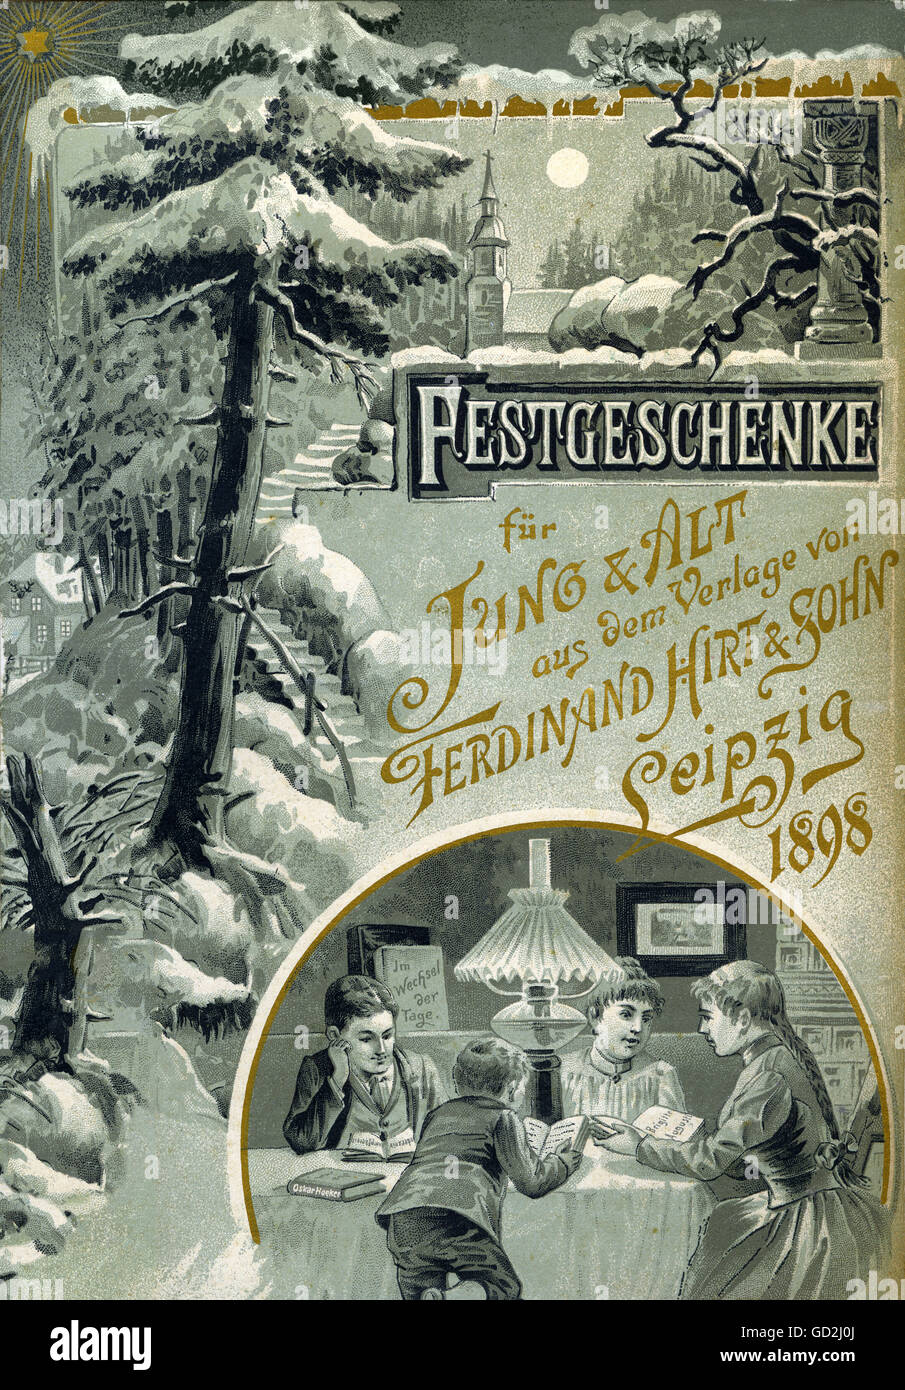 Christmas, celebration gifts for young and old from the publishing house of Ferdinand Hirt & Son Leipzig 1898, - Stock Image